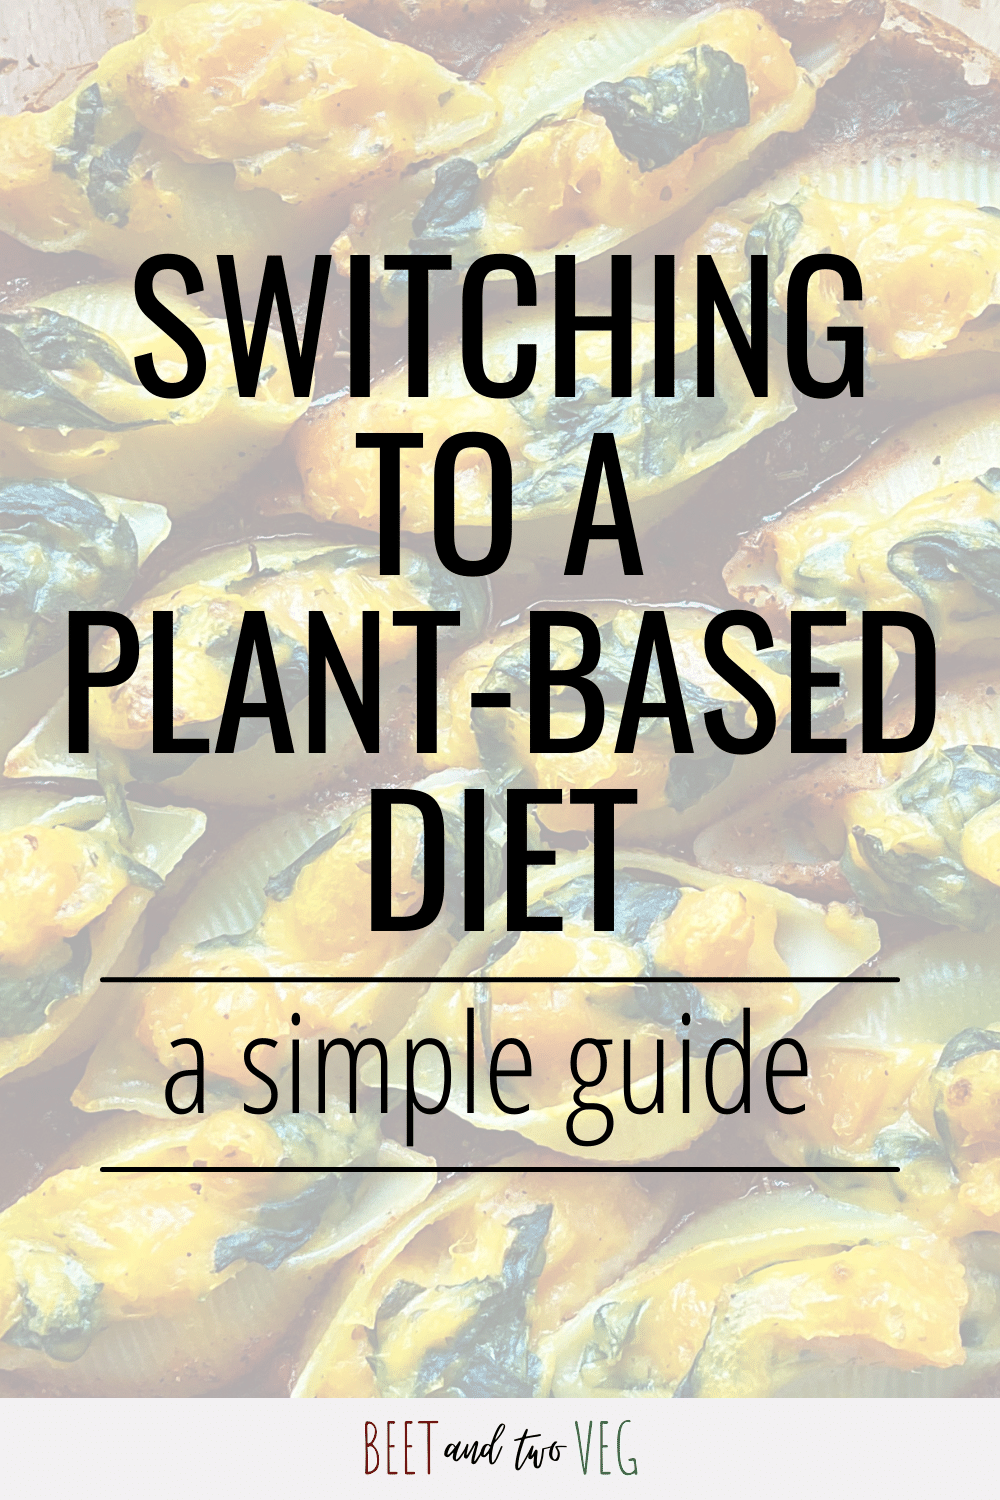 switching to a plant-based diet